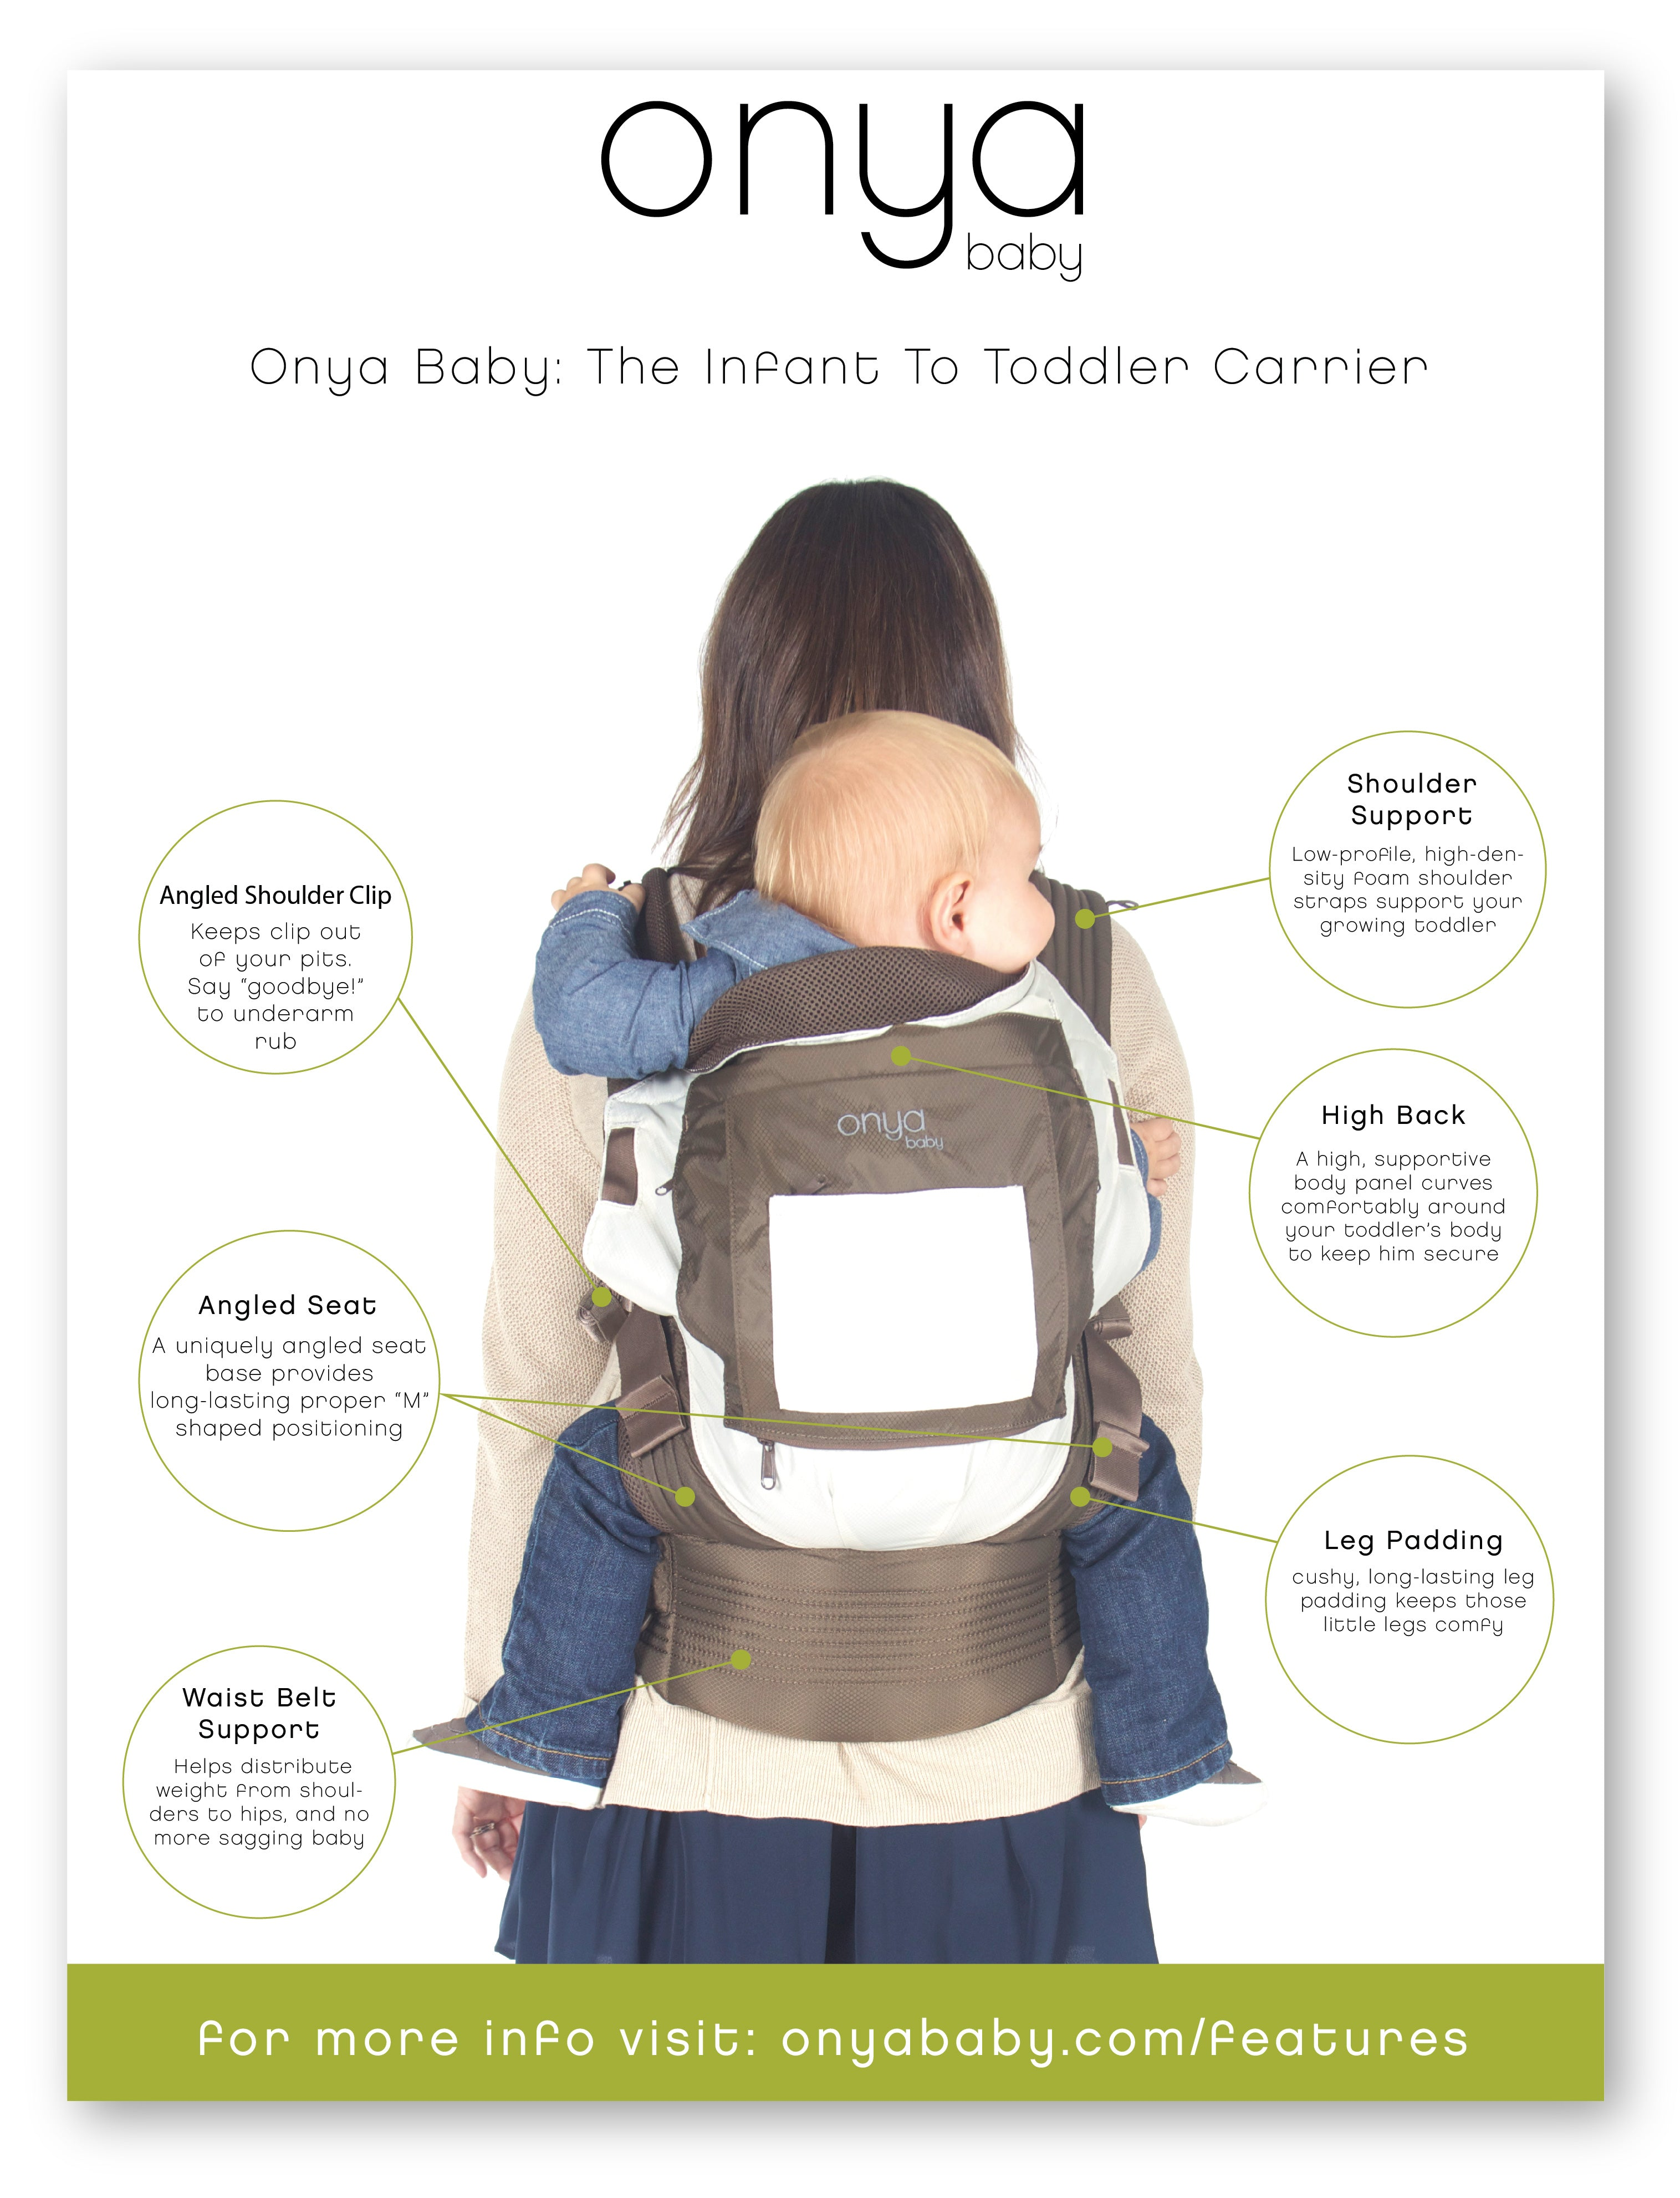 Looking for a great toddler carrier? An Onya already IS one!